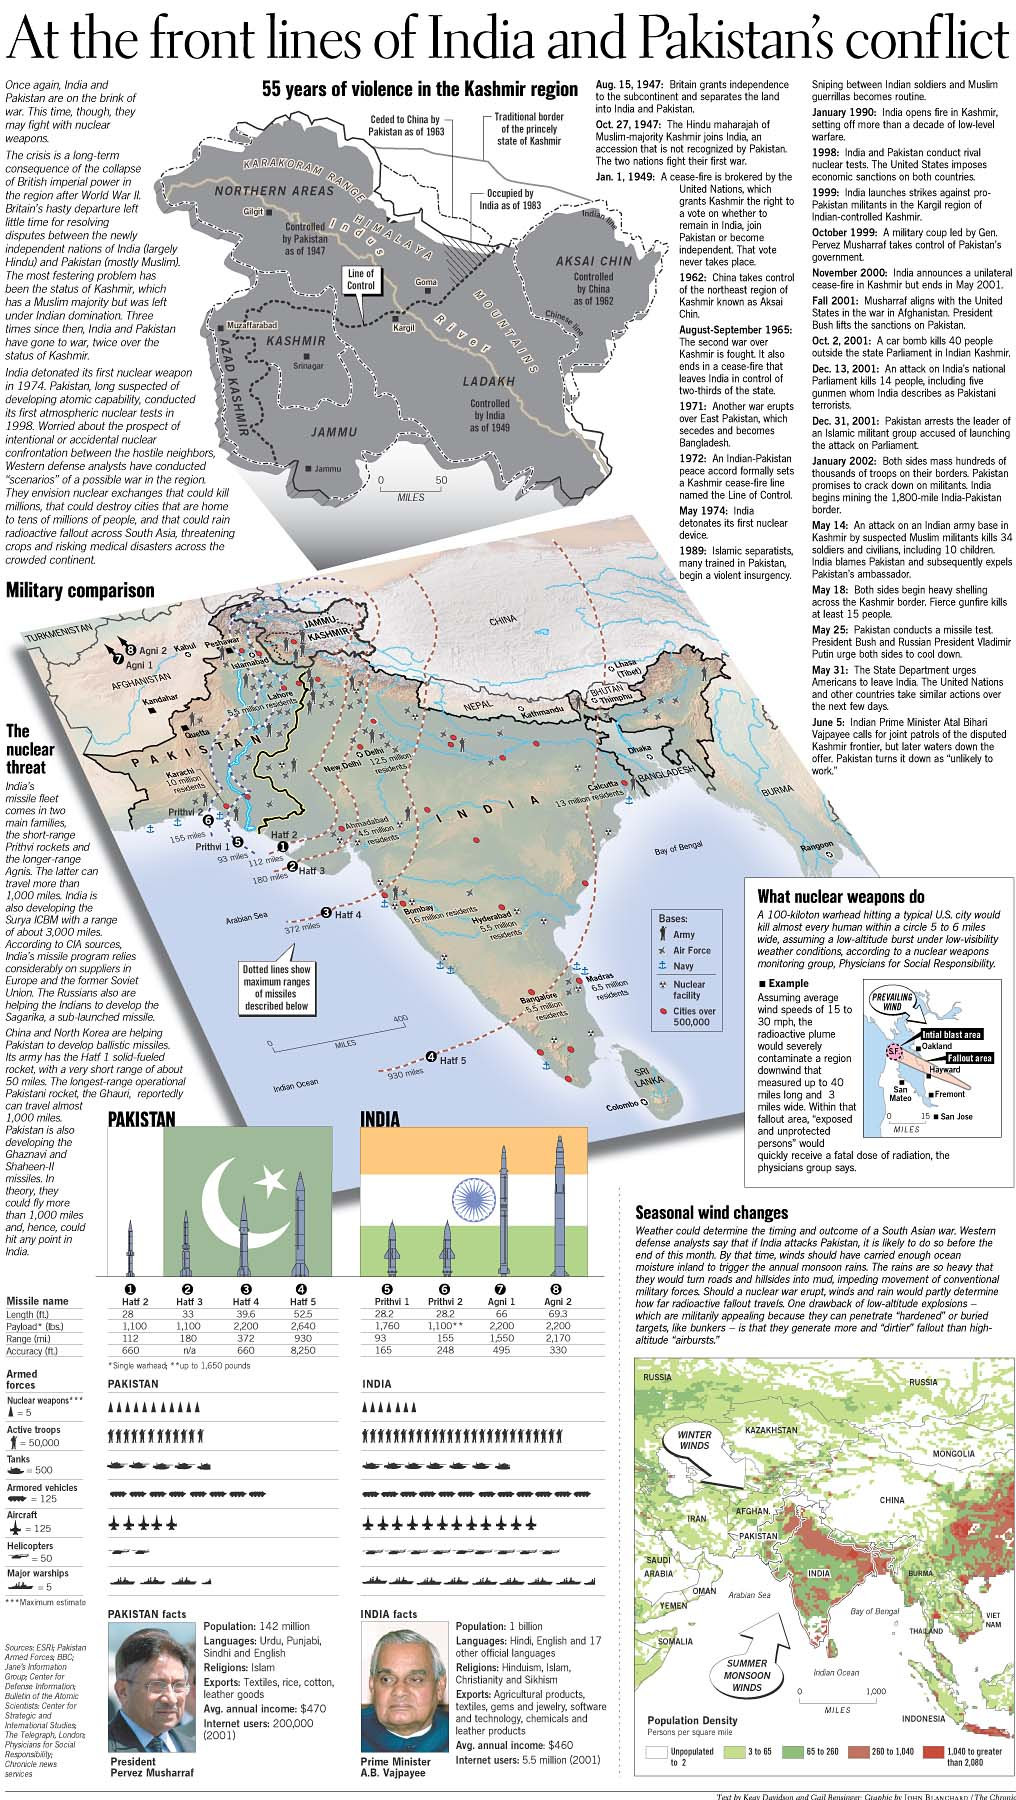 kashmir conflict between pakistan and india Background to the kashmir conflict kashmir has always been at the centre of the dispute between india and pakistan but unfortunately both sides have failed to give.